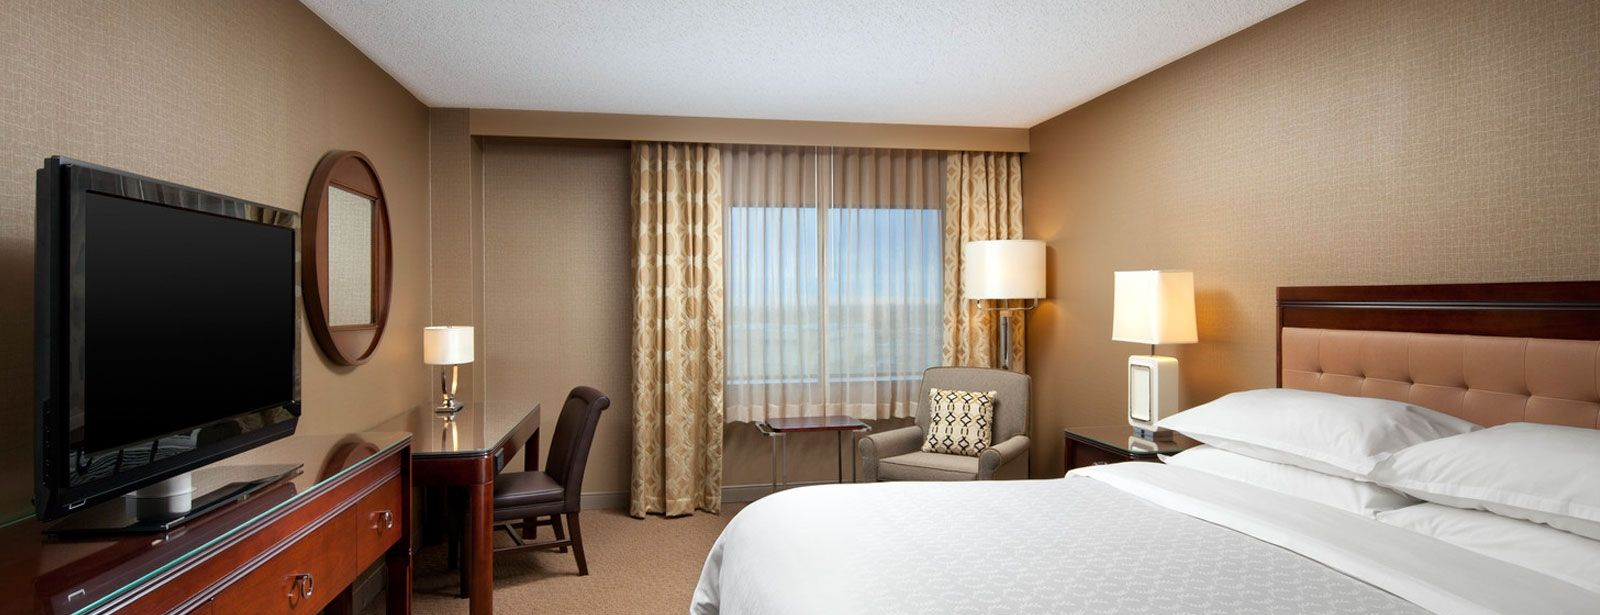 Standard King Traditional Room | Sheraton Denver Tech Center Hotel